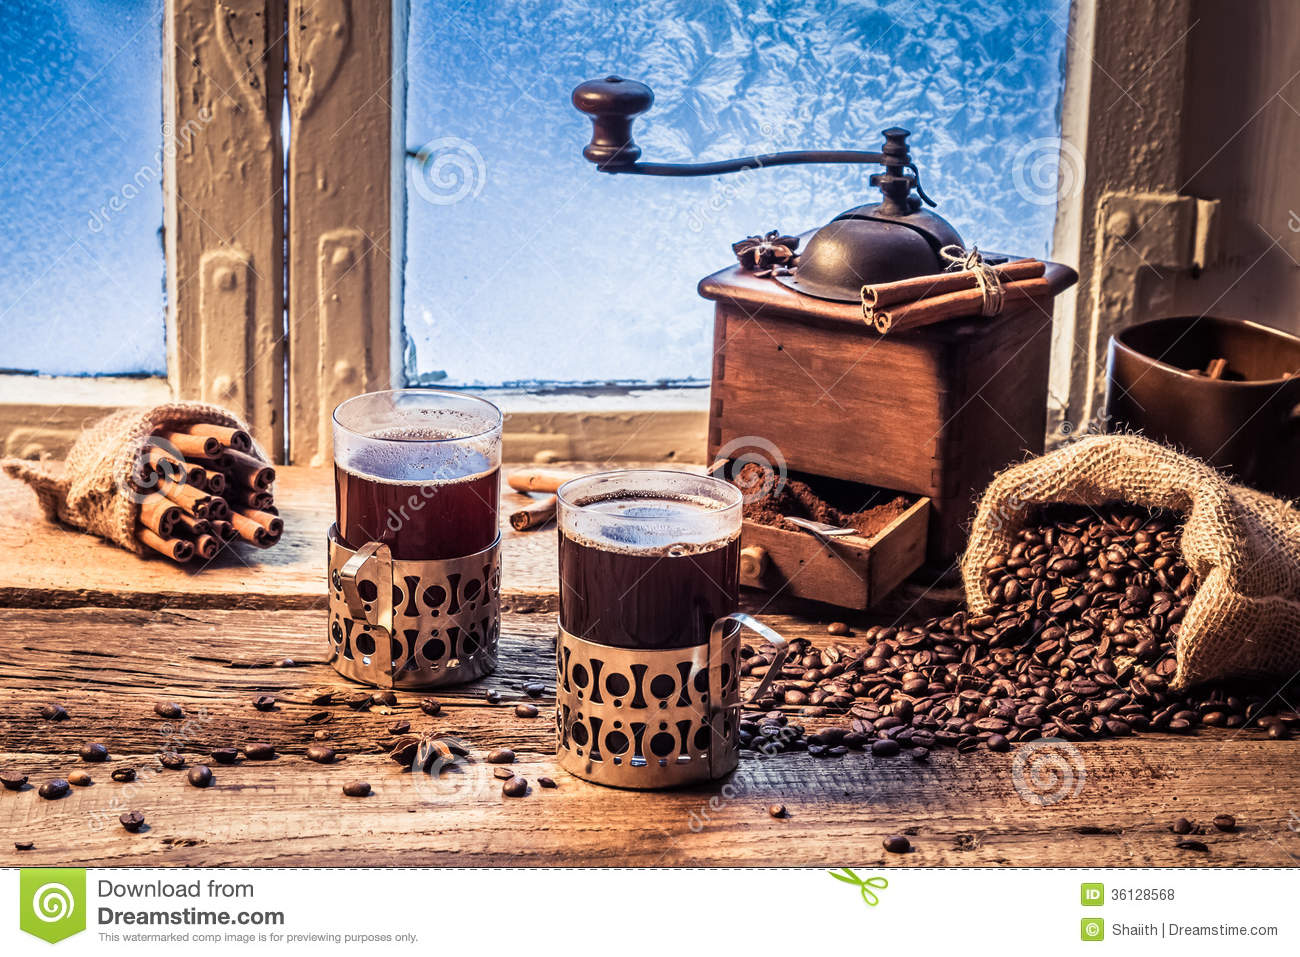 Enjoy Your Hot Coffee In Winter Day Royalty Free Stock